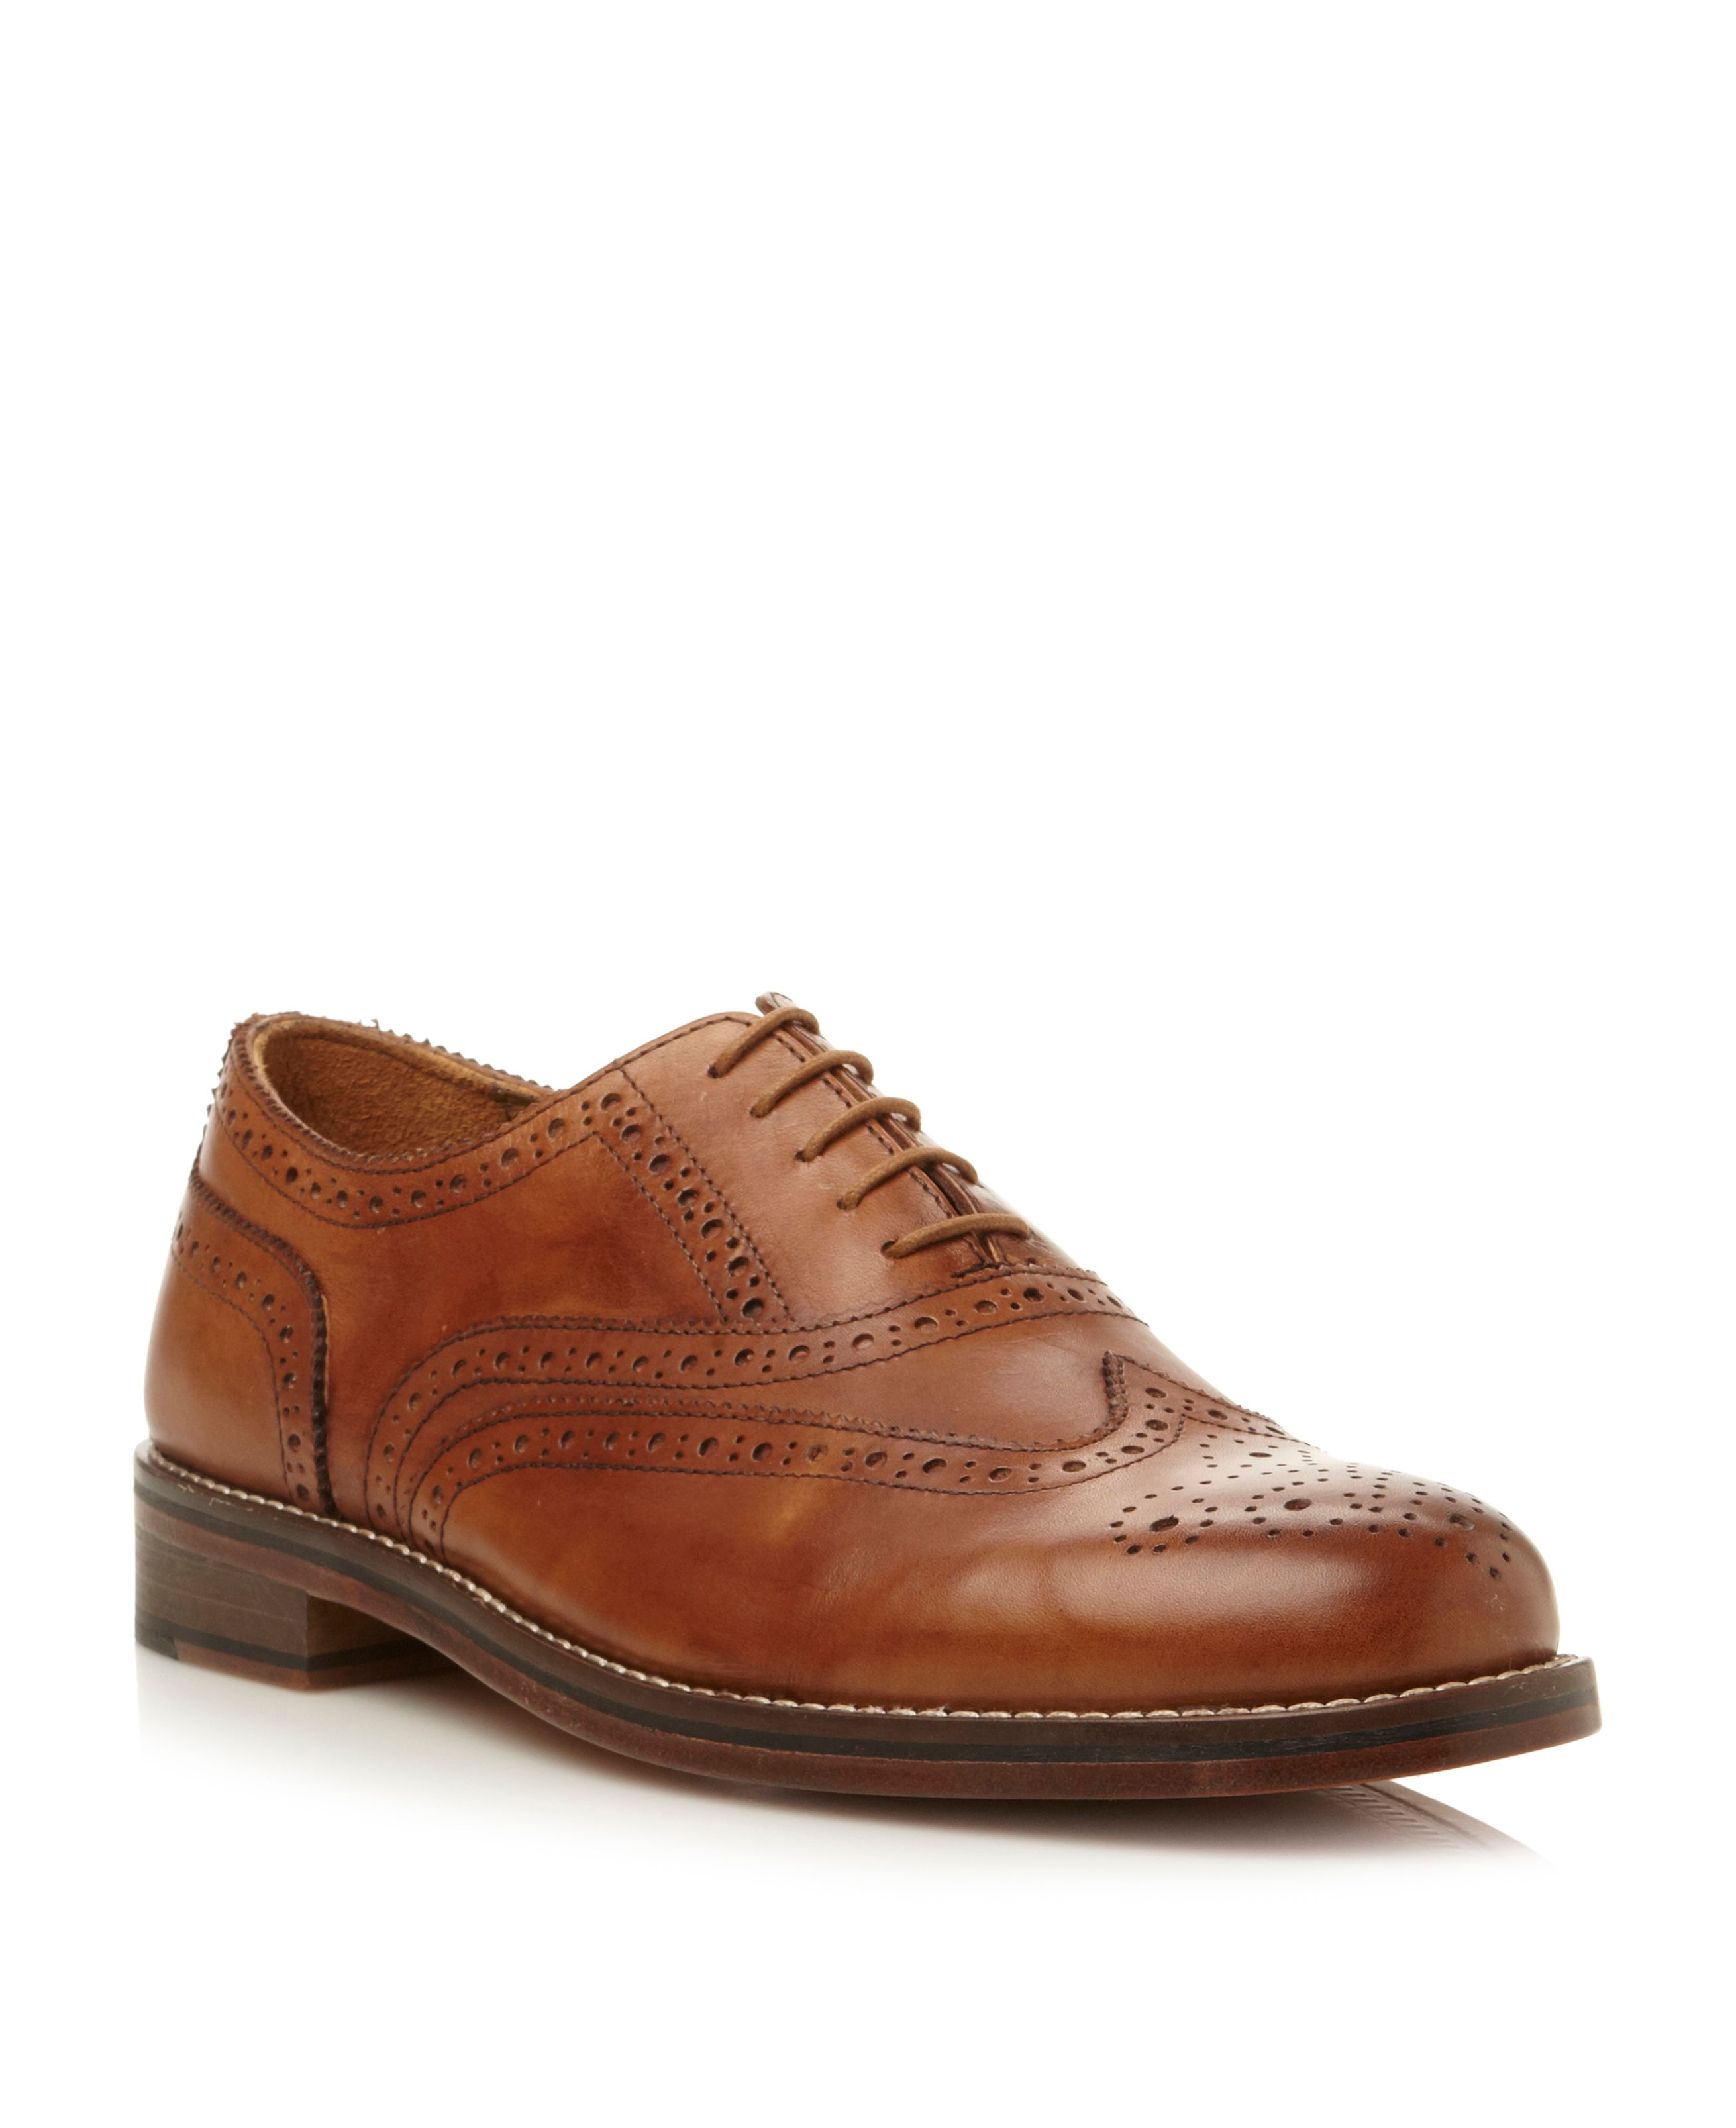 Axton 1 lace up oxford heavy brogues